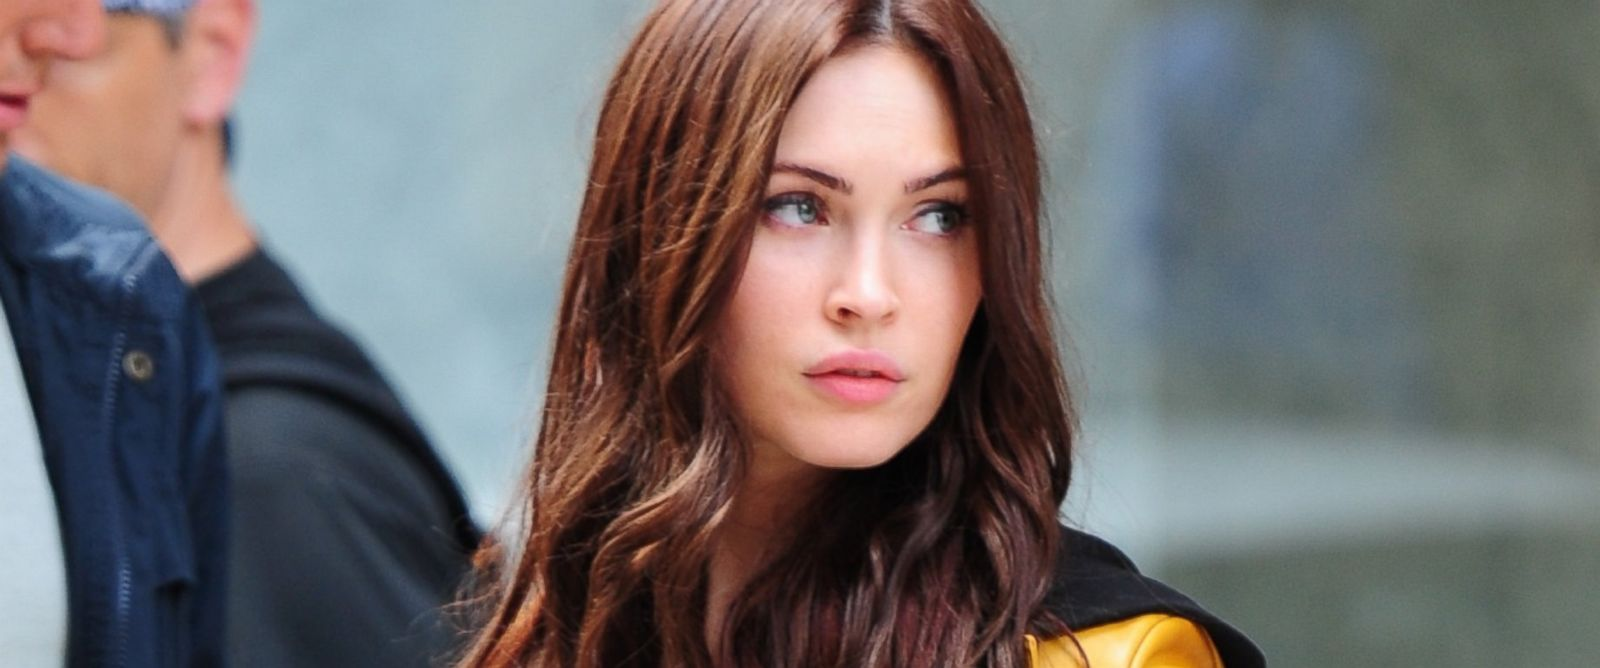 PHOTO: Megan Fox is pictured on May 9, 2013 in New York City.